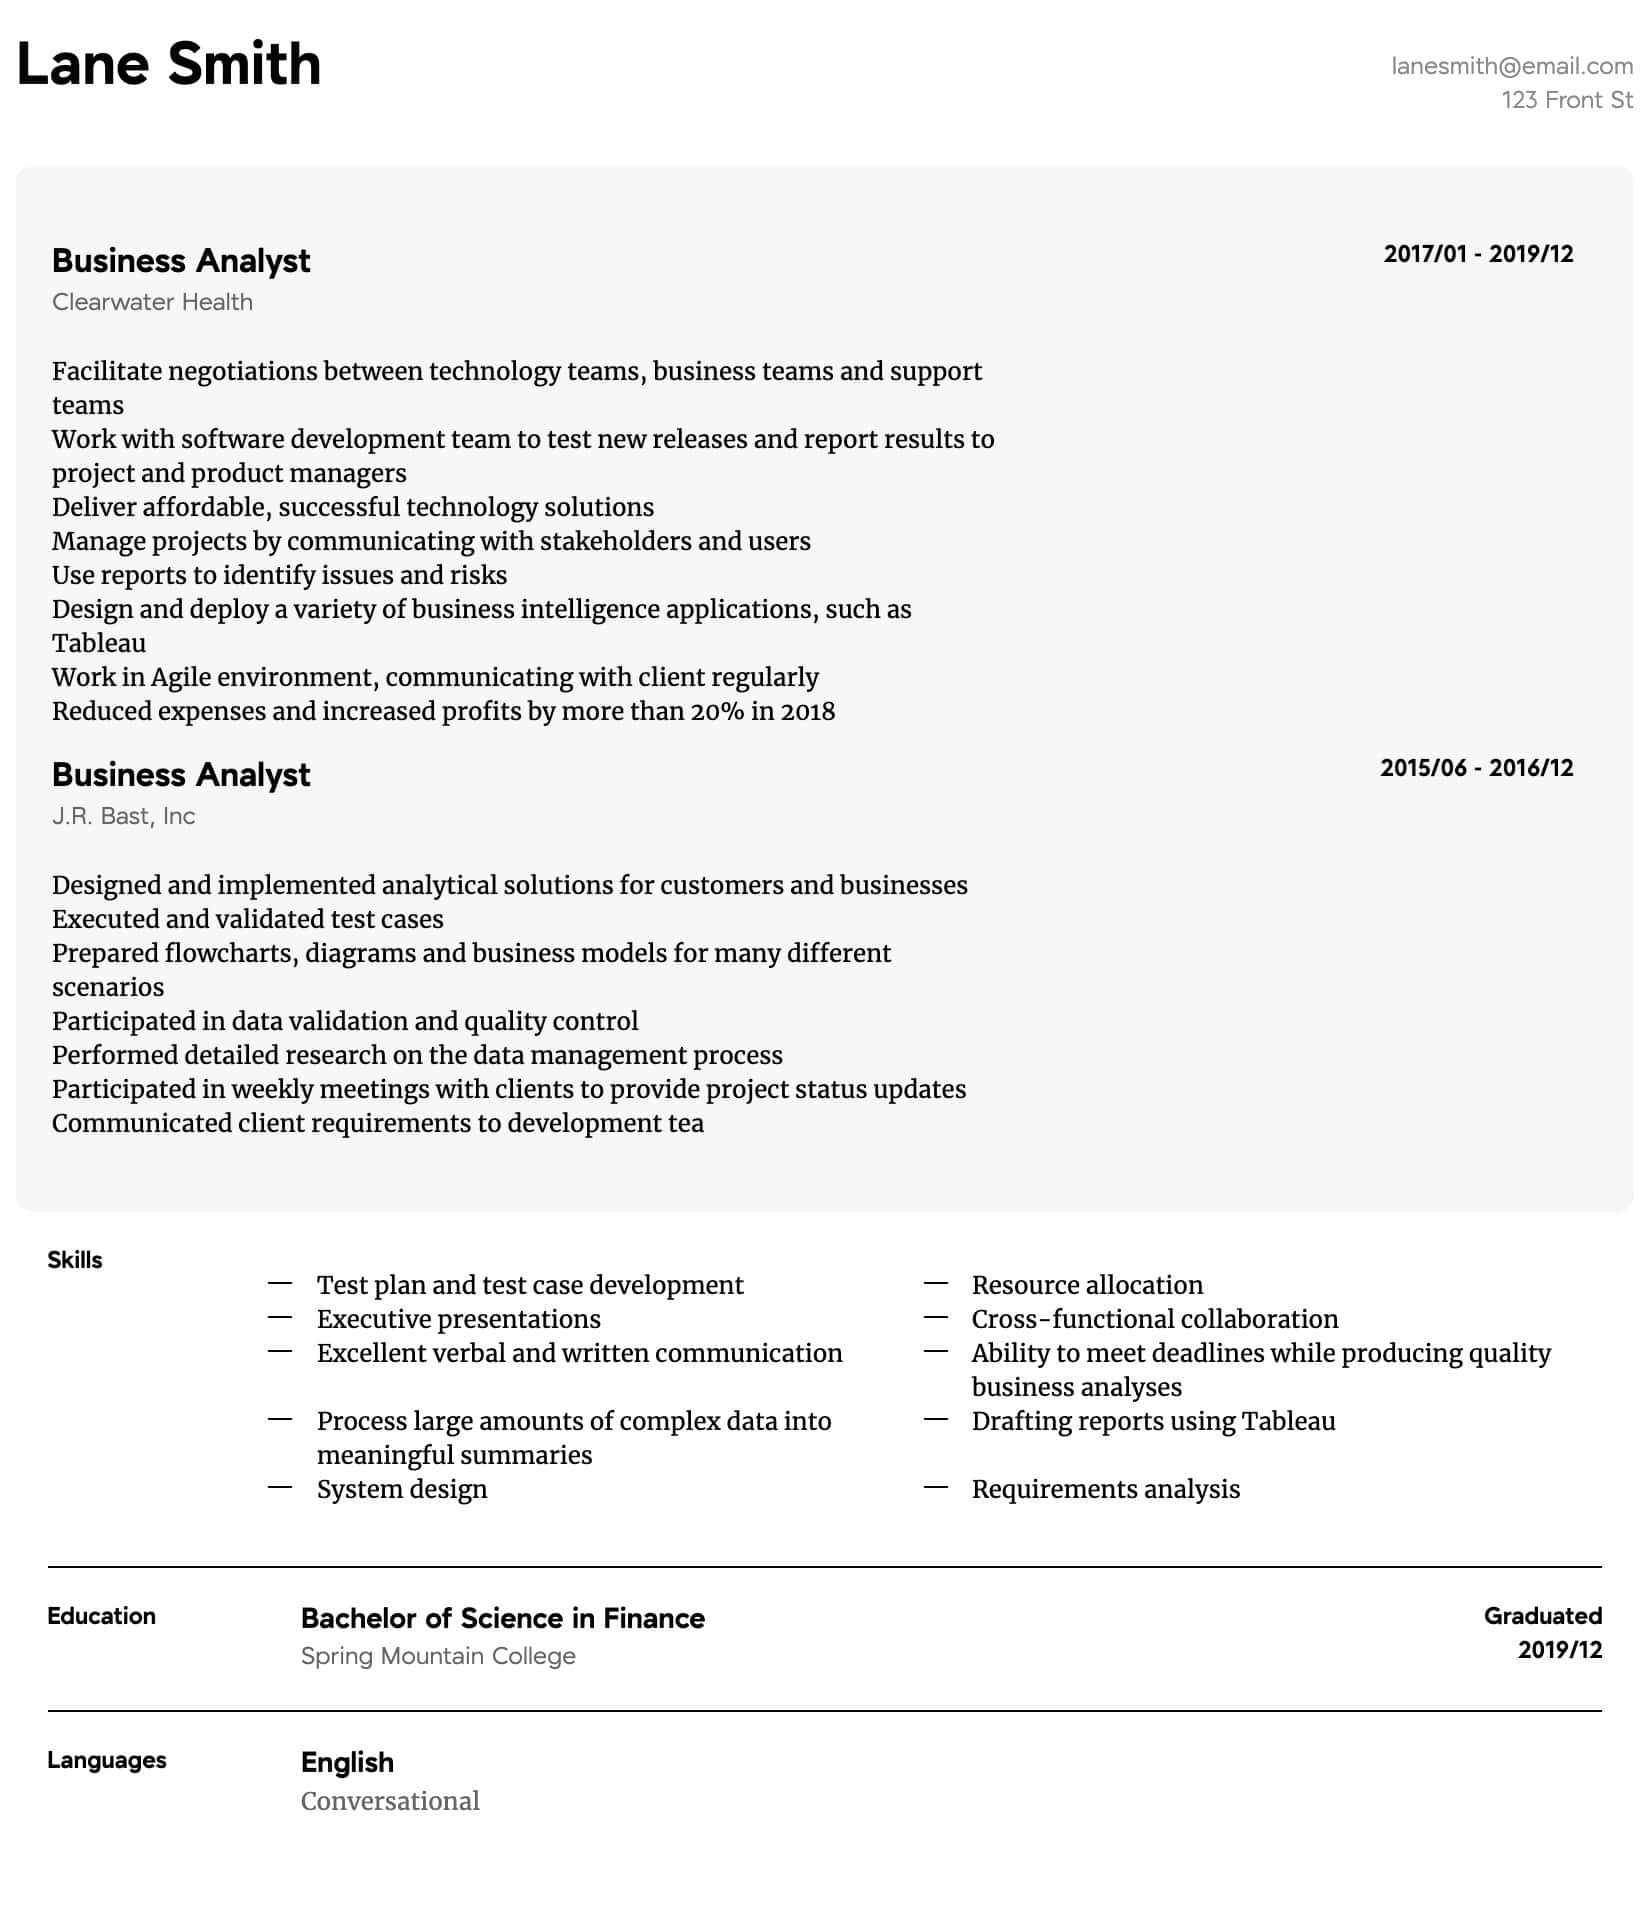 business analyst resume samples all experience levels objective intermediate hotel Resume Business Analyst Resume Objective